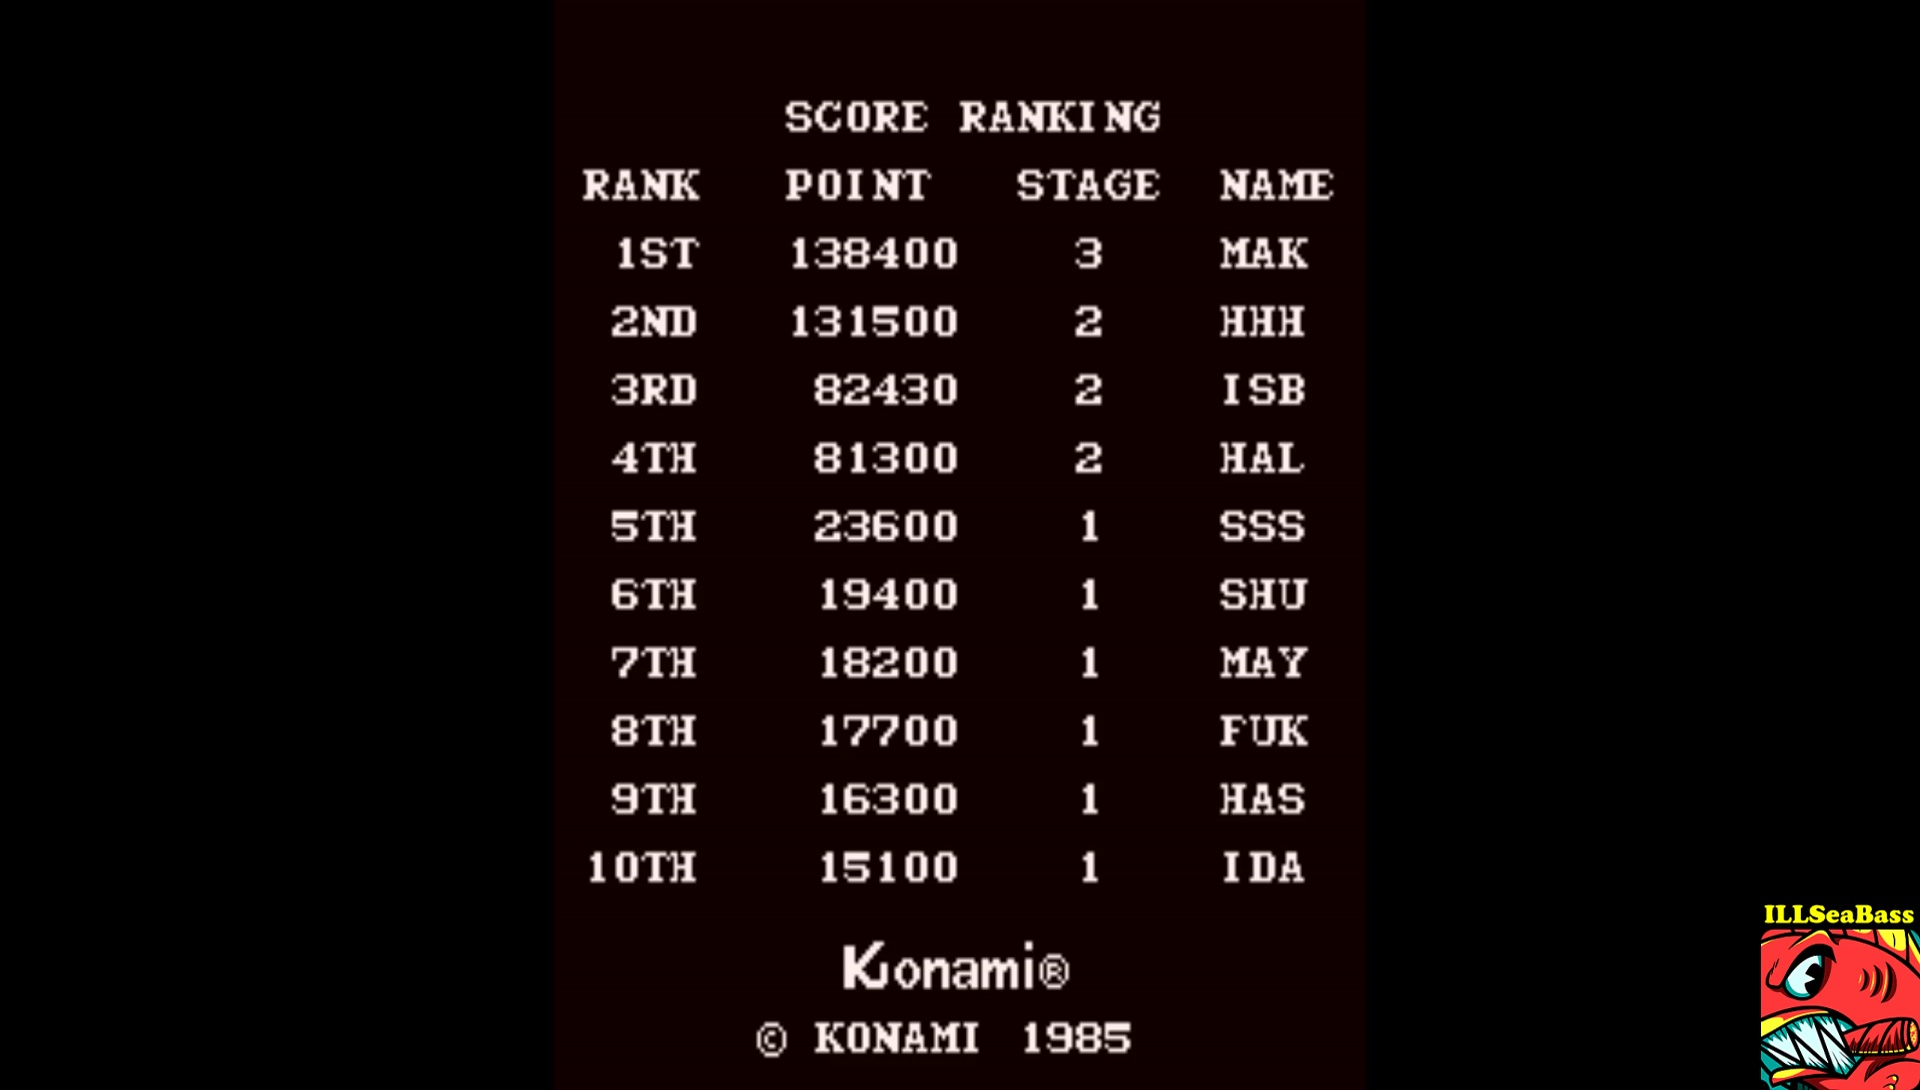 ILLSeaBass: Scooter Shooter [scotrsht] (Arcade Emulated / M.A.M.E.) 82,430 points on 2017-08-11 18:16:22